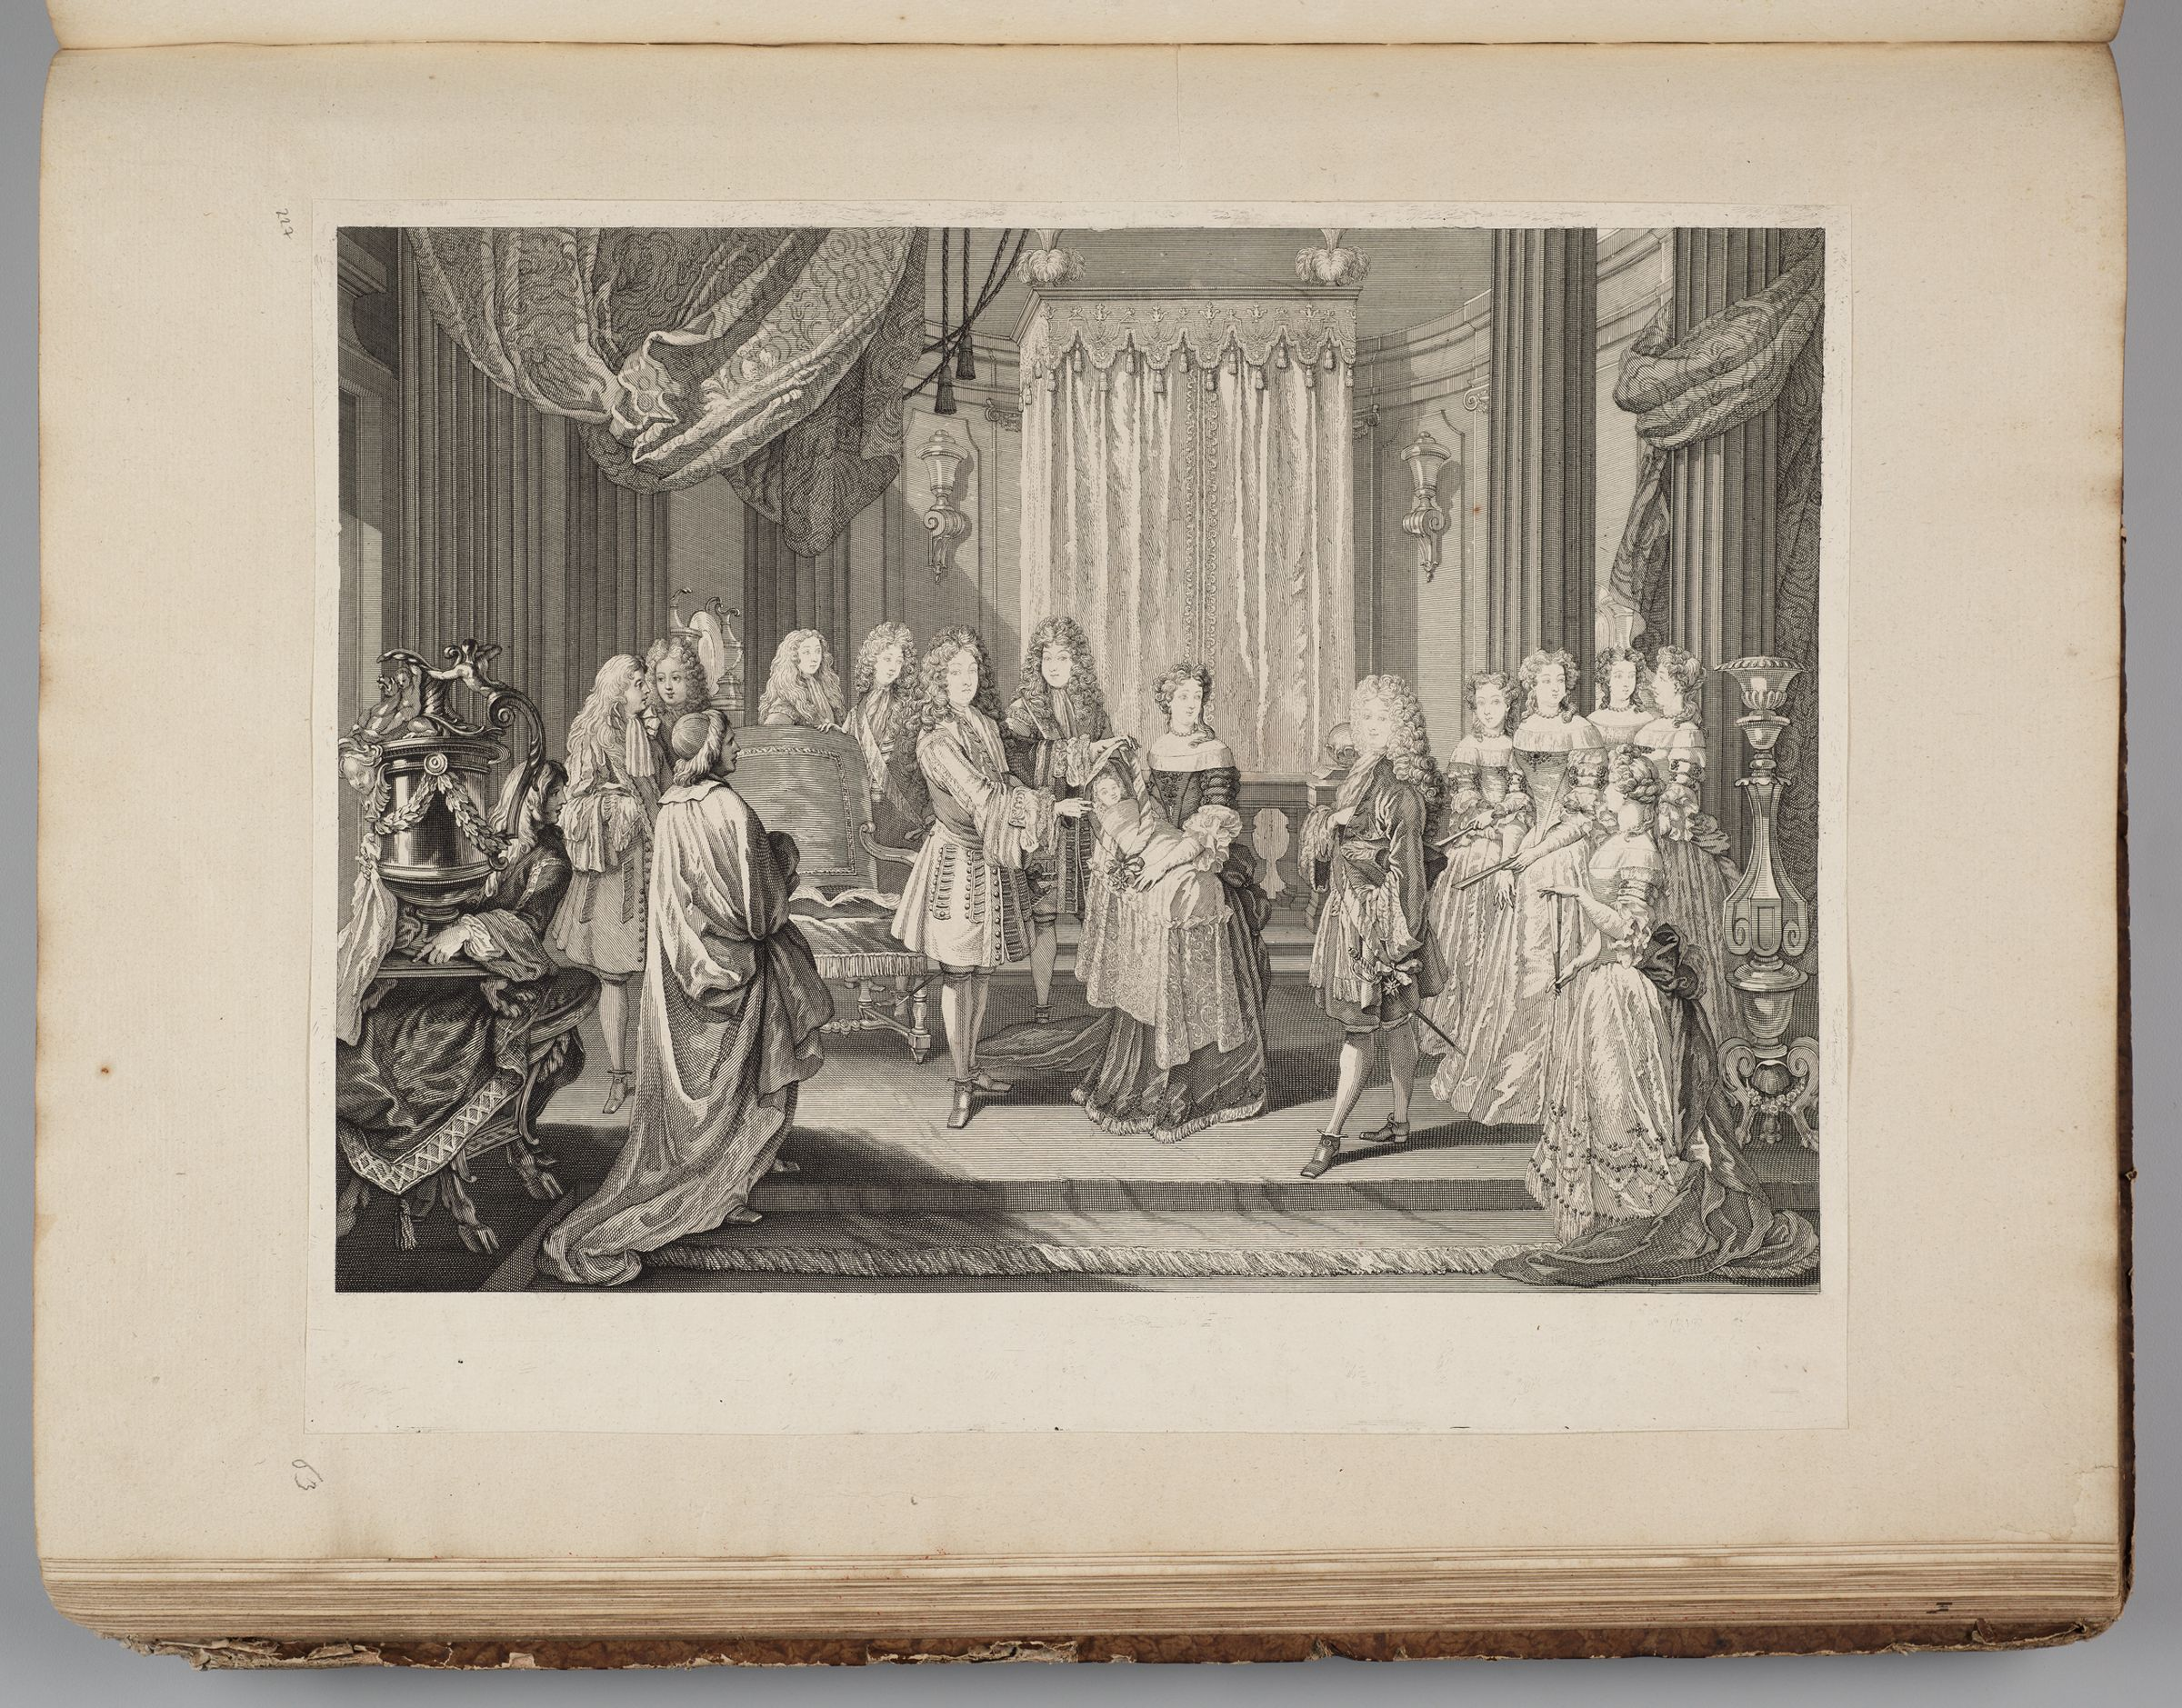 Louis Xiv Awarding The Blue Ribbon Of The Order Of The Holy Spirit To The Duke Of Burgundy, Father Of Louis Xv, The Reigning King Of France